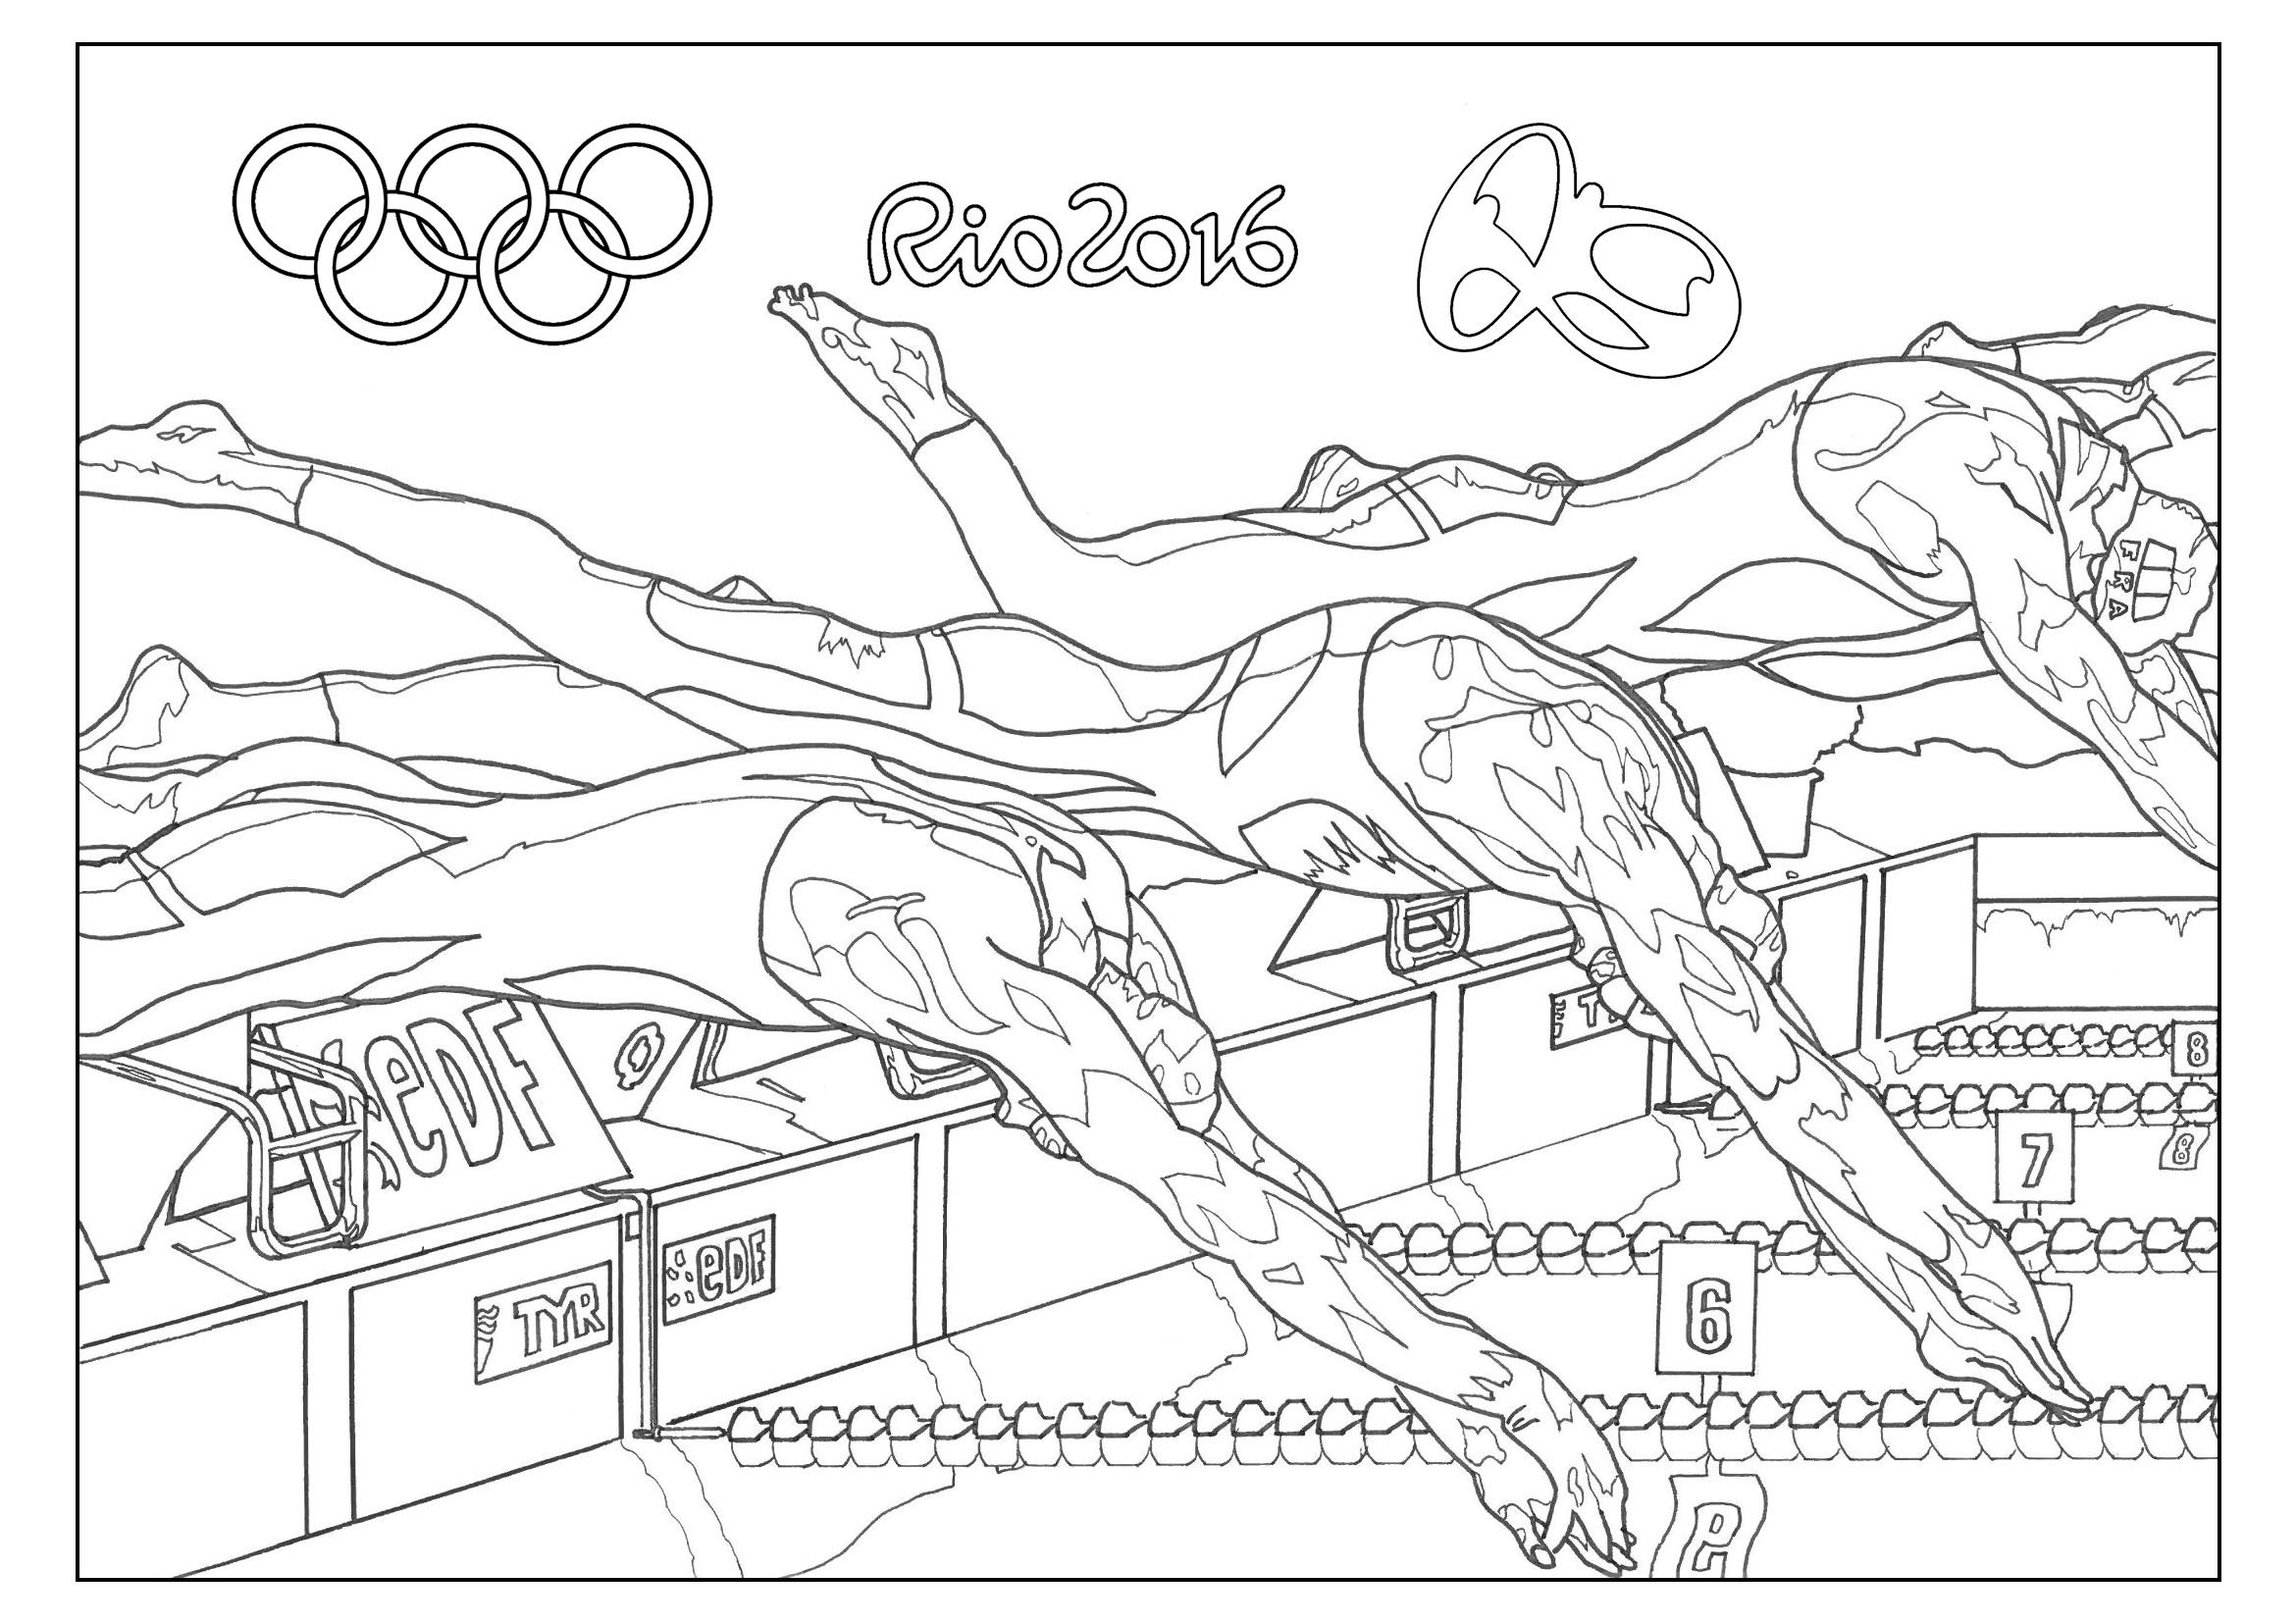 printable summer olympics coloring pages coloring page summer olympics swimming synchronized printable pages summer coloring olympics